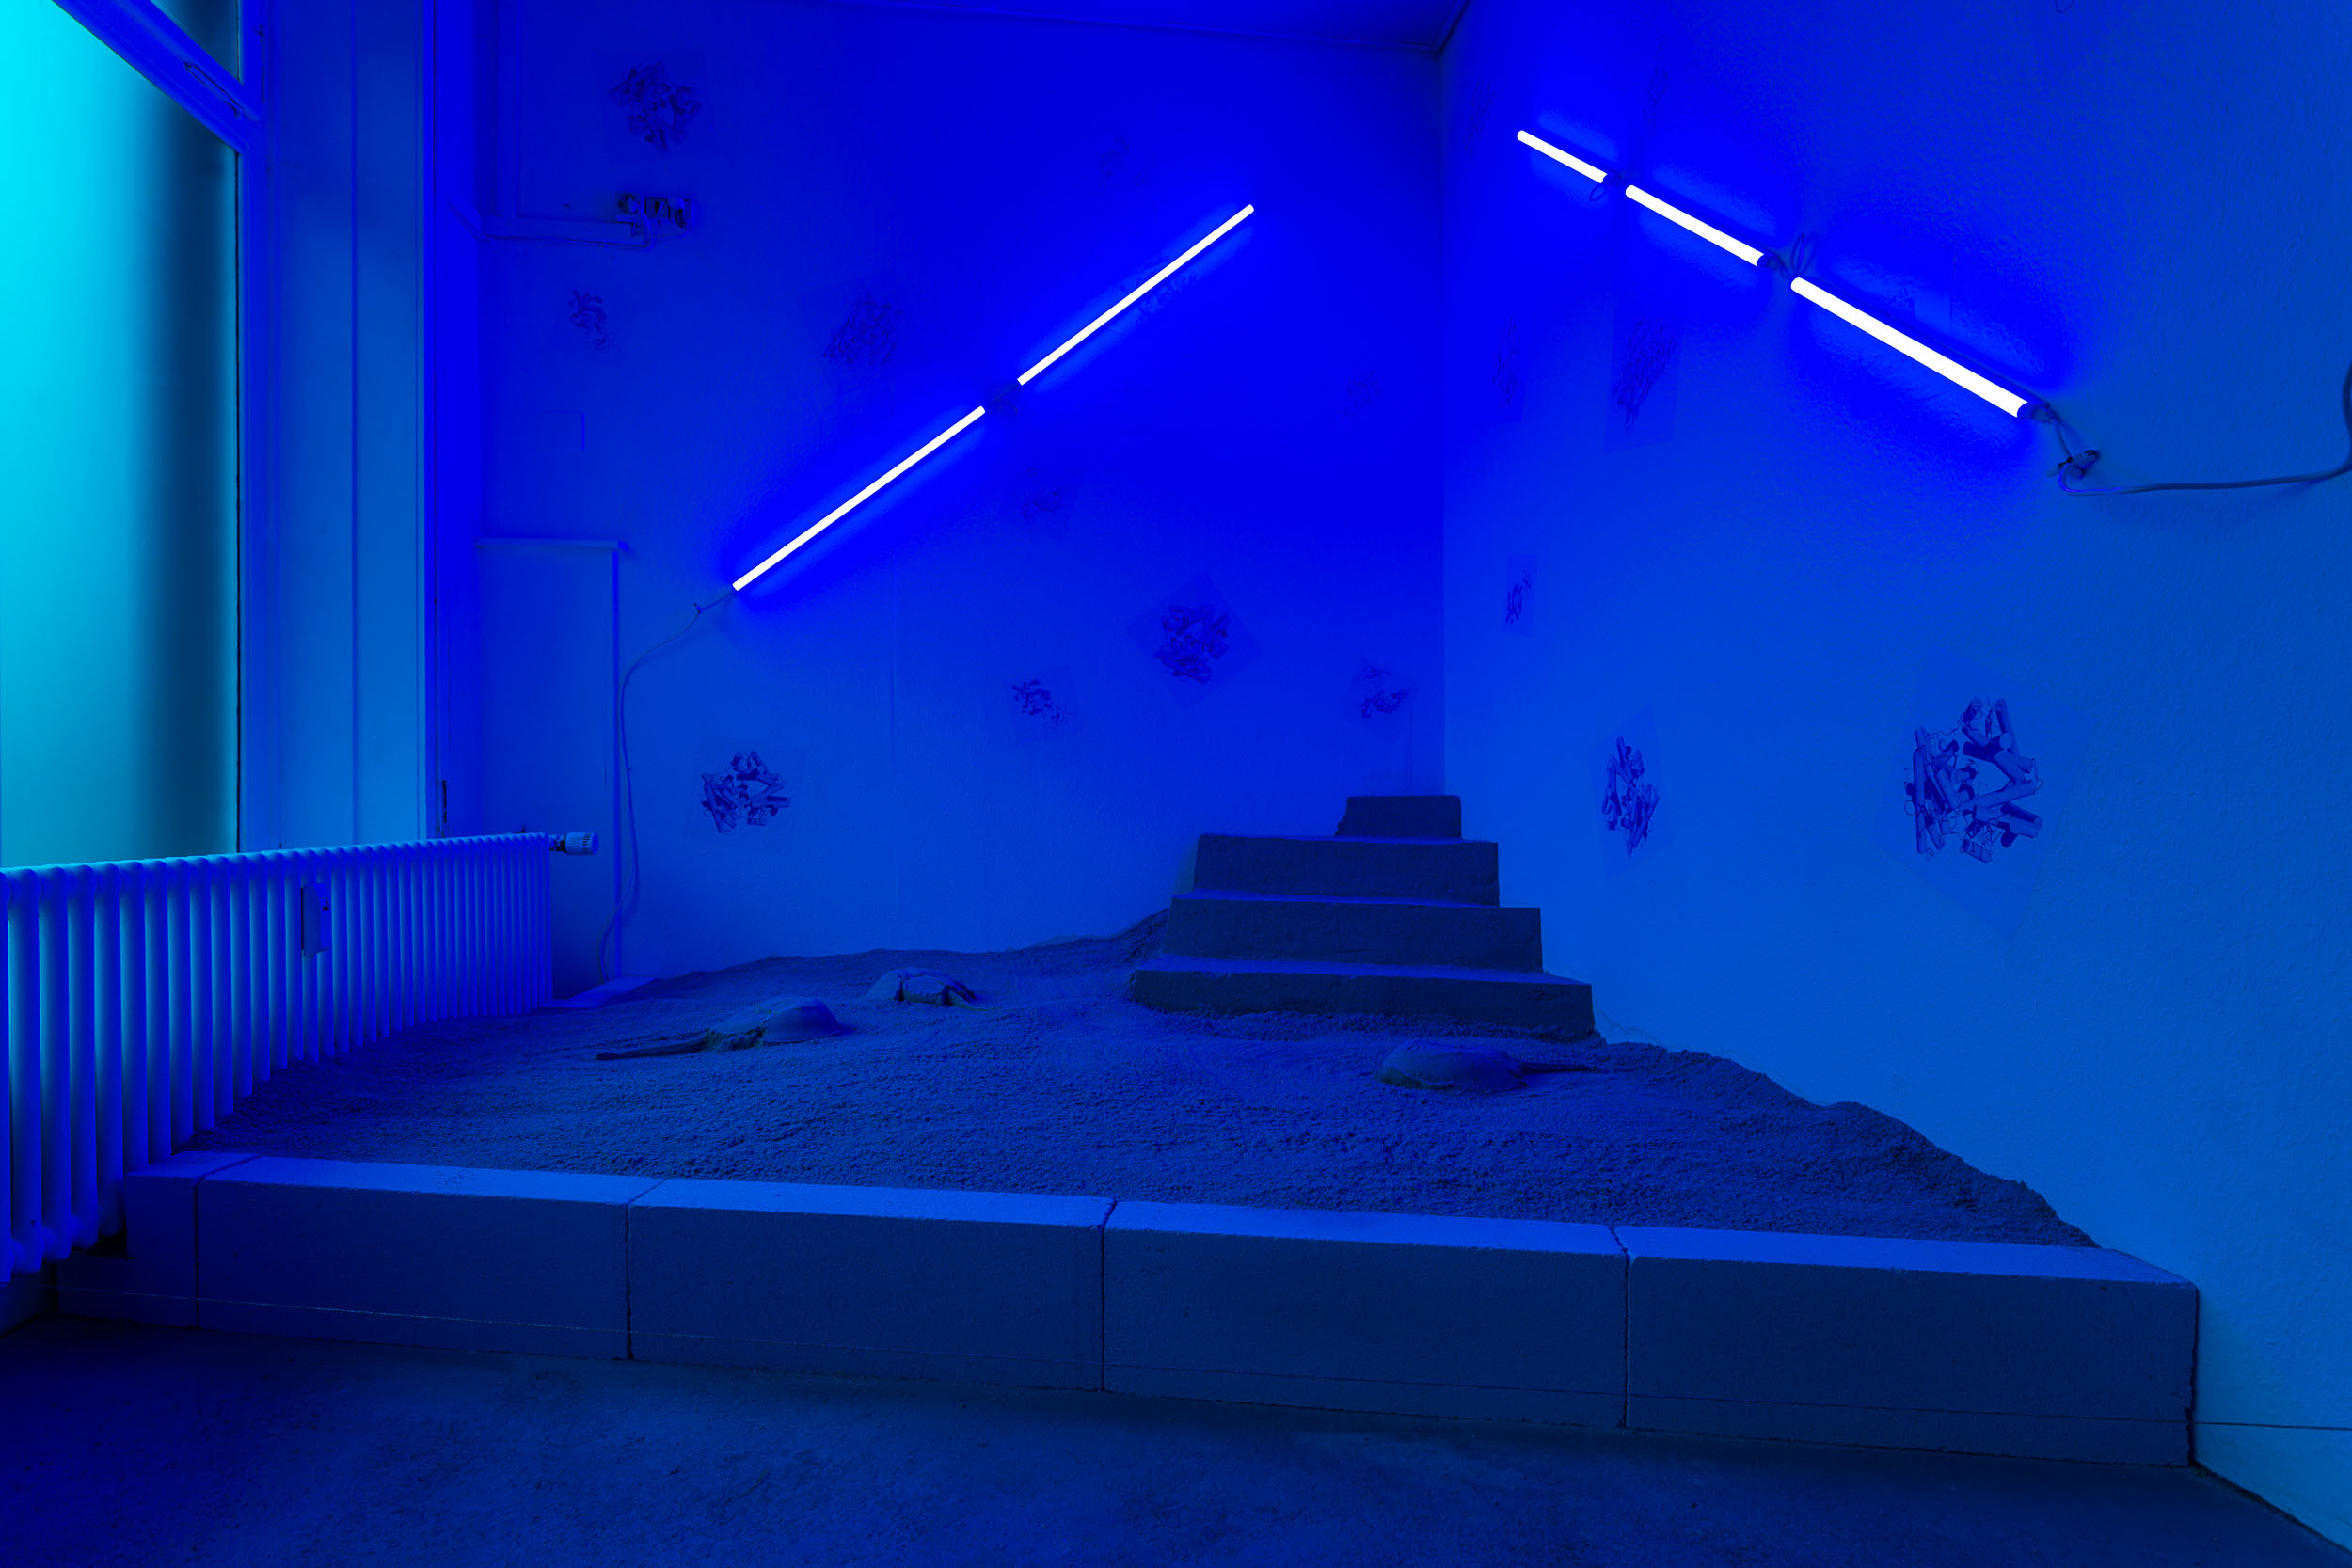 Nadim Abbas, Blue Noon, 2017. Multimedia installation. Dimensions variable. Courtesy of Last Tango, Zurich, CH.